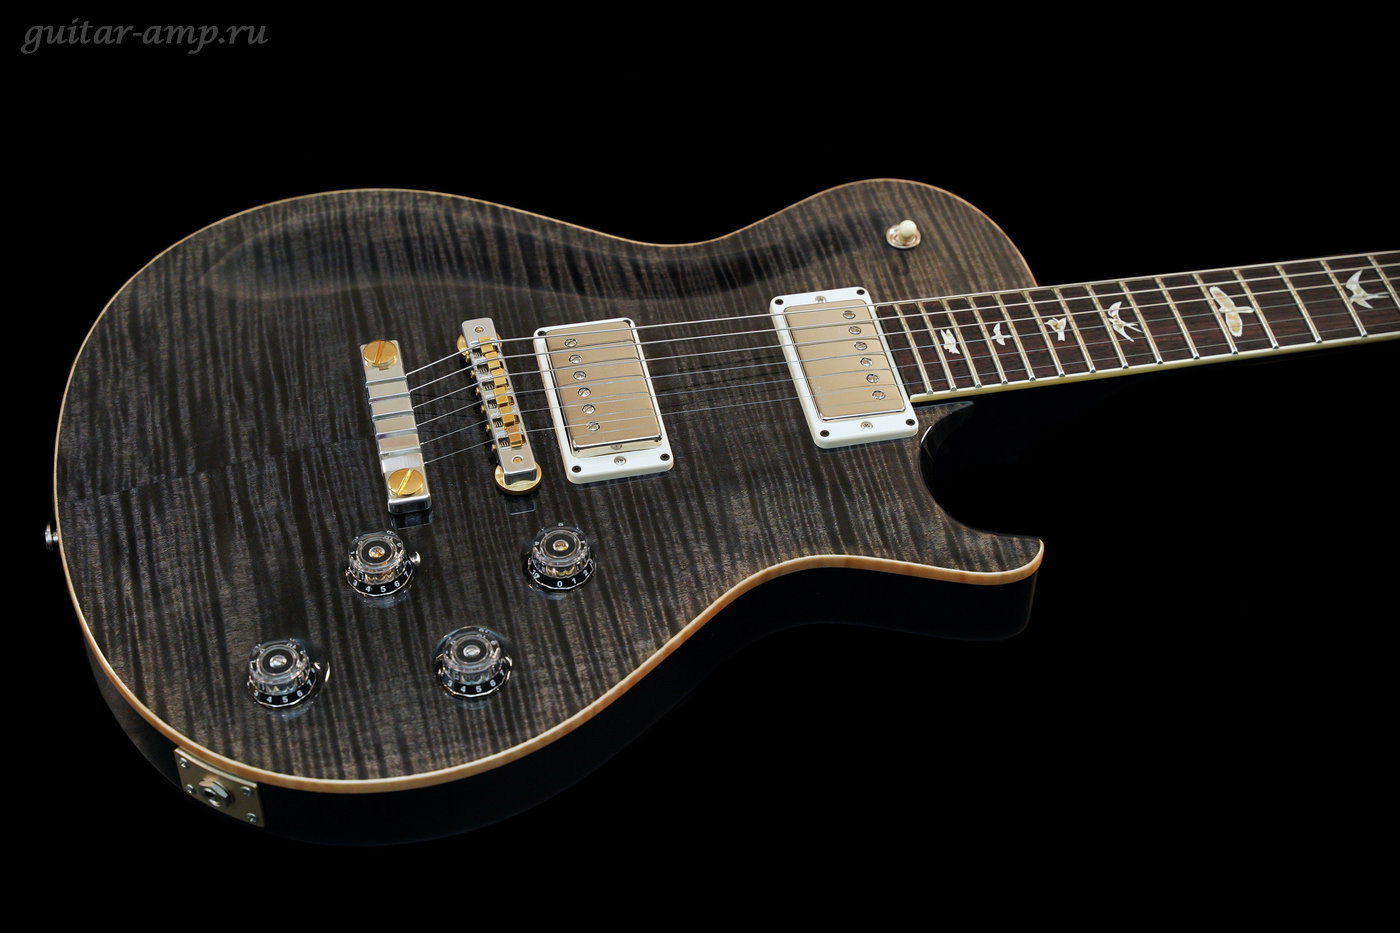 PRS SC245 Charcoal Grey Black 10 Top 2015 05_garx1400.jpg